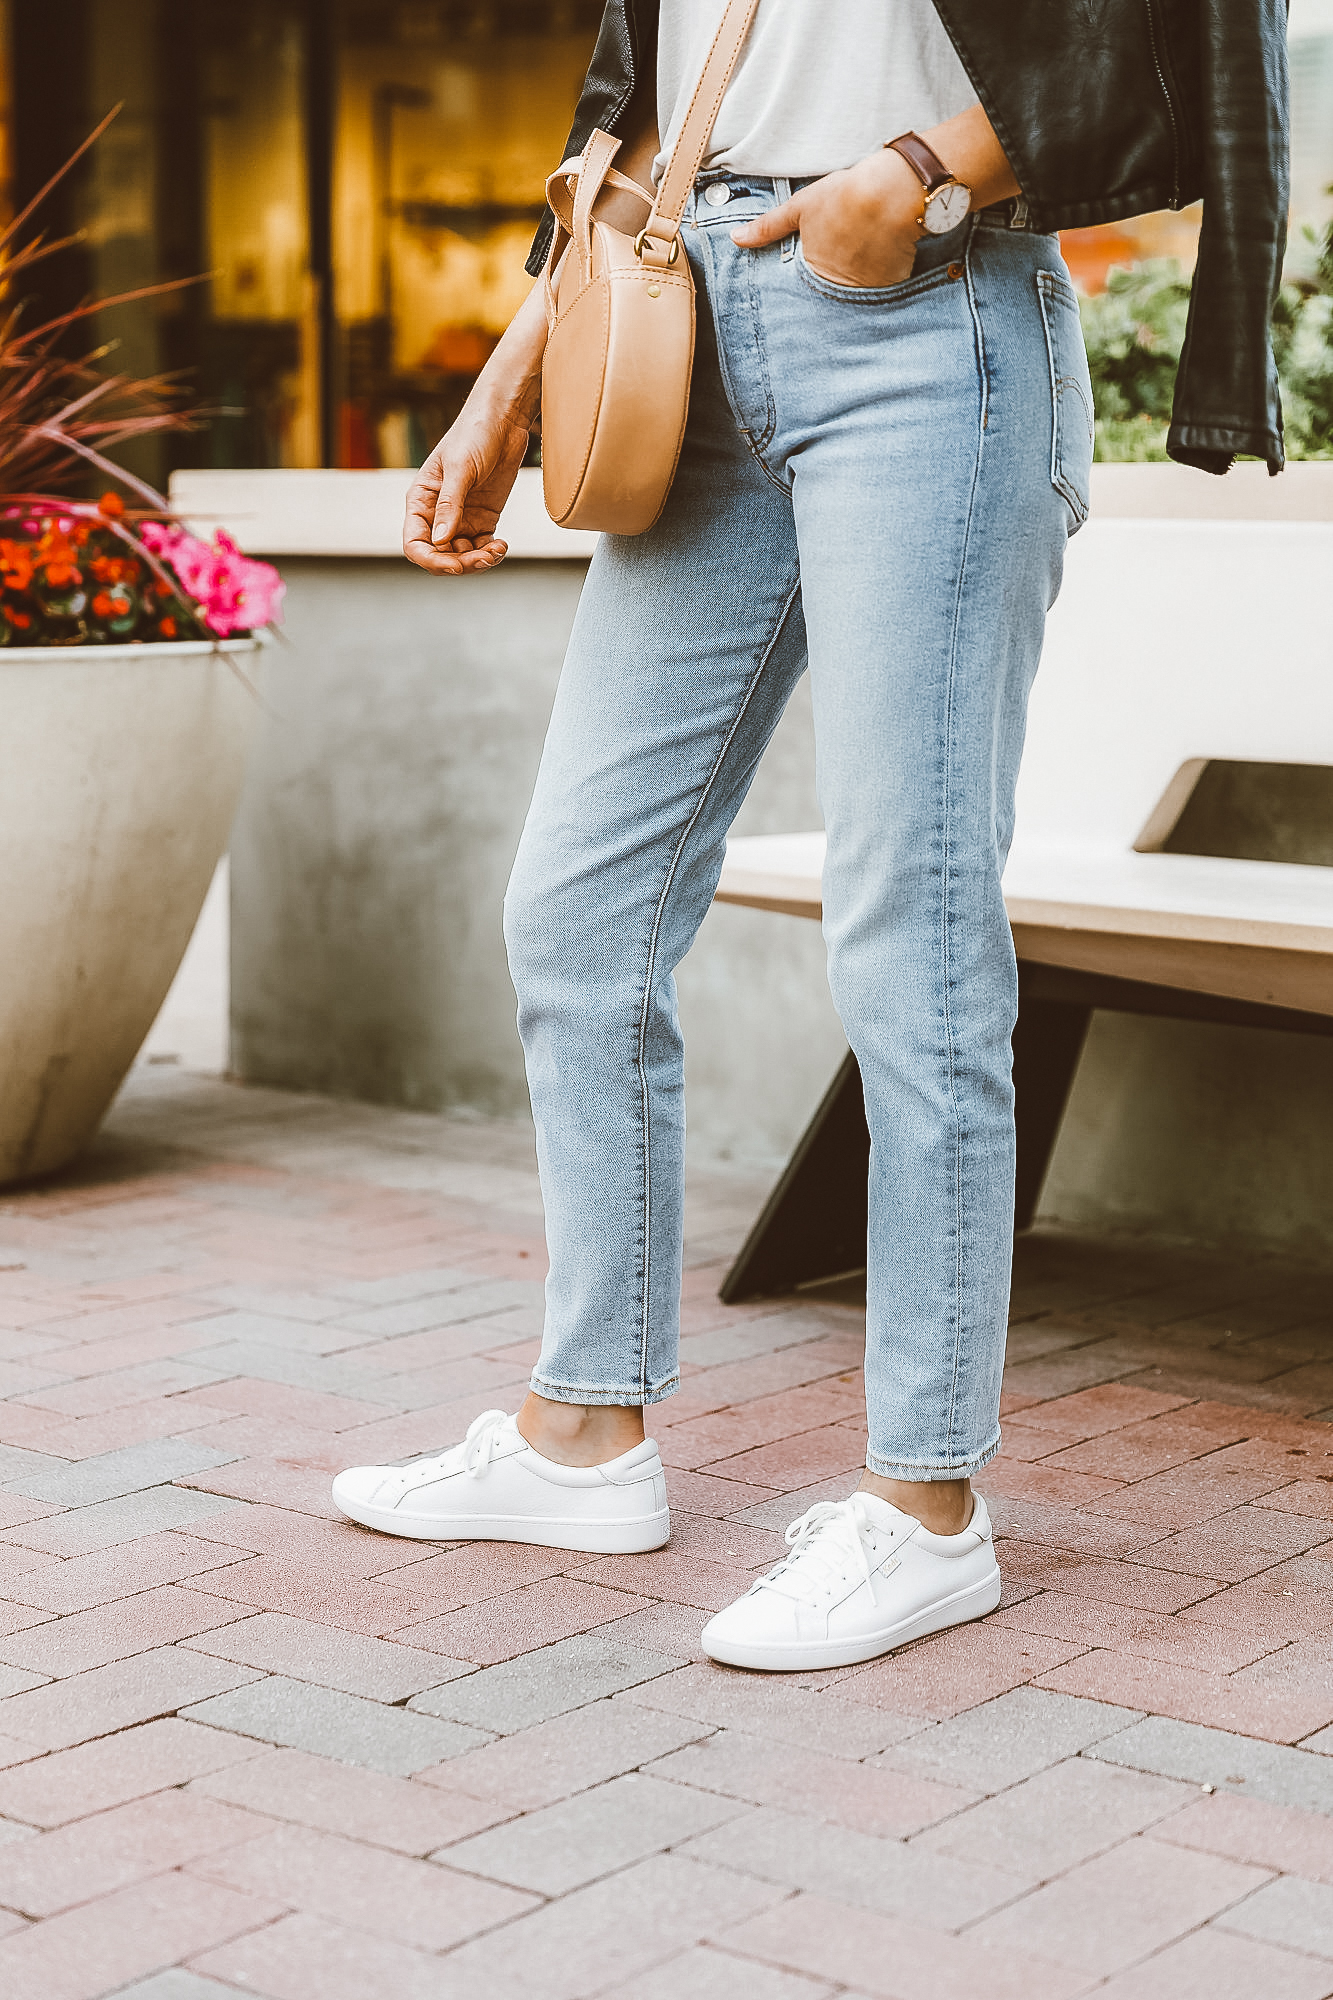 jeans and white sneakers